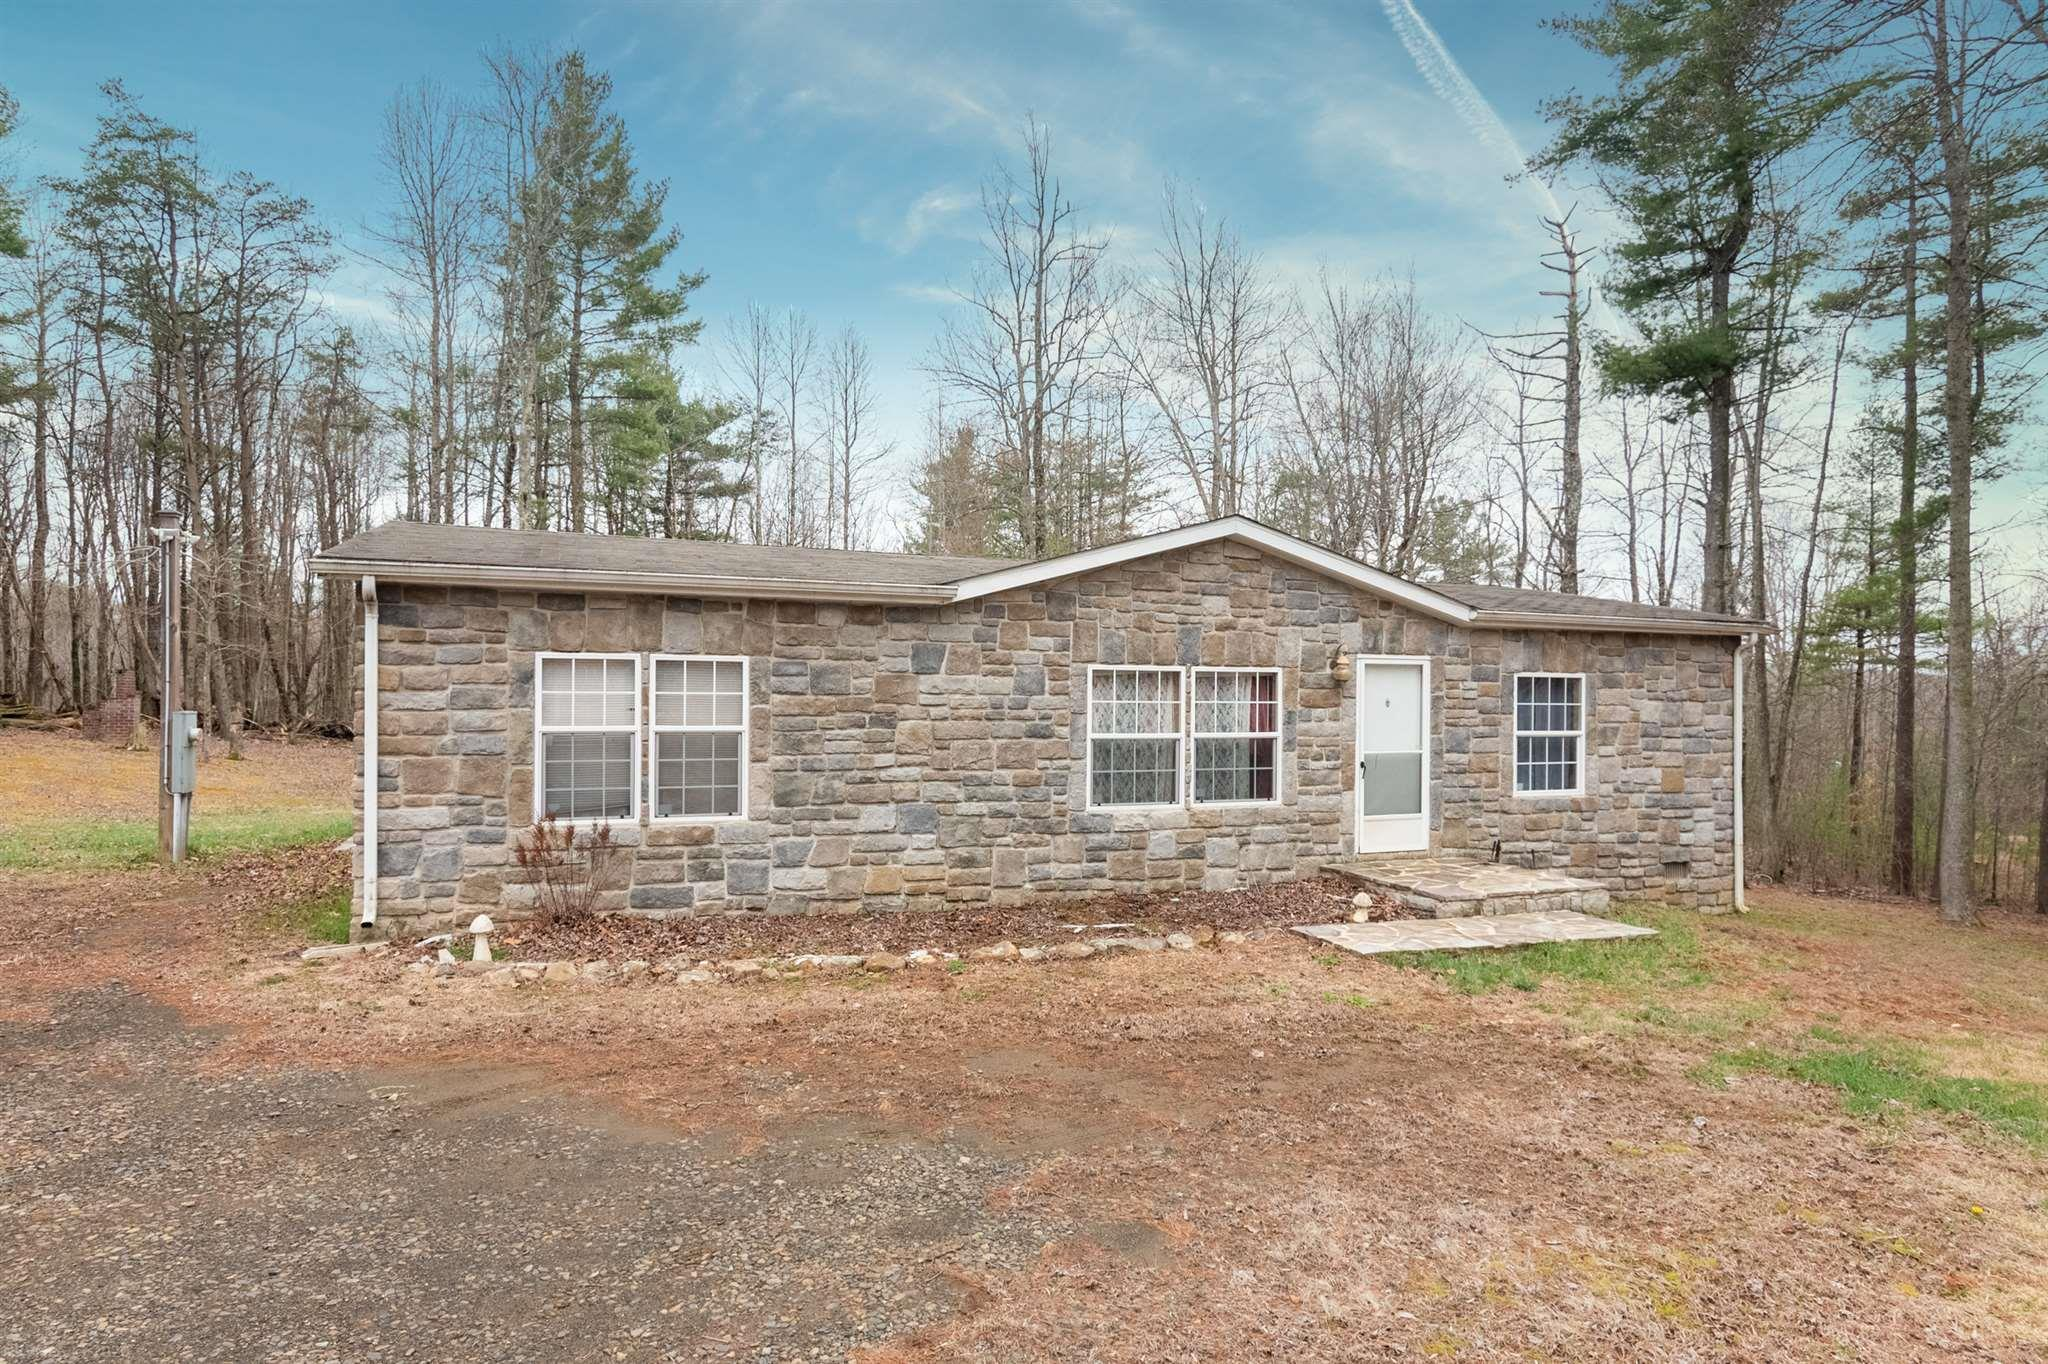 Come and look no further for your next home. 3BR, 2BA double wide with enough space outside to roam. Close to land that features 200 acres of four-wheeling and 400 acres of hunting space. Deck and firepit out back for gatherings. Charming wood fort. Shed for extra storage.